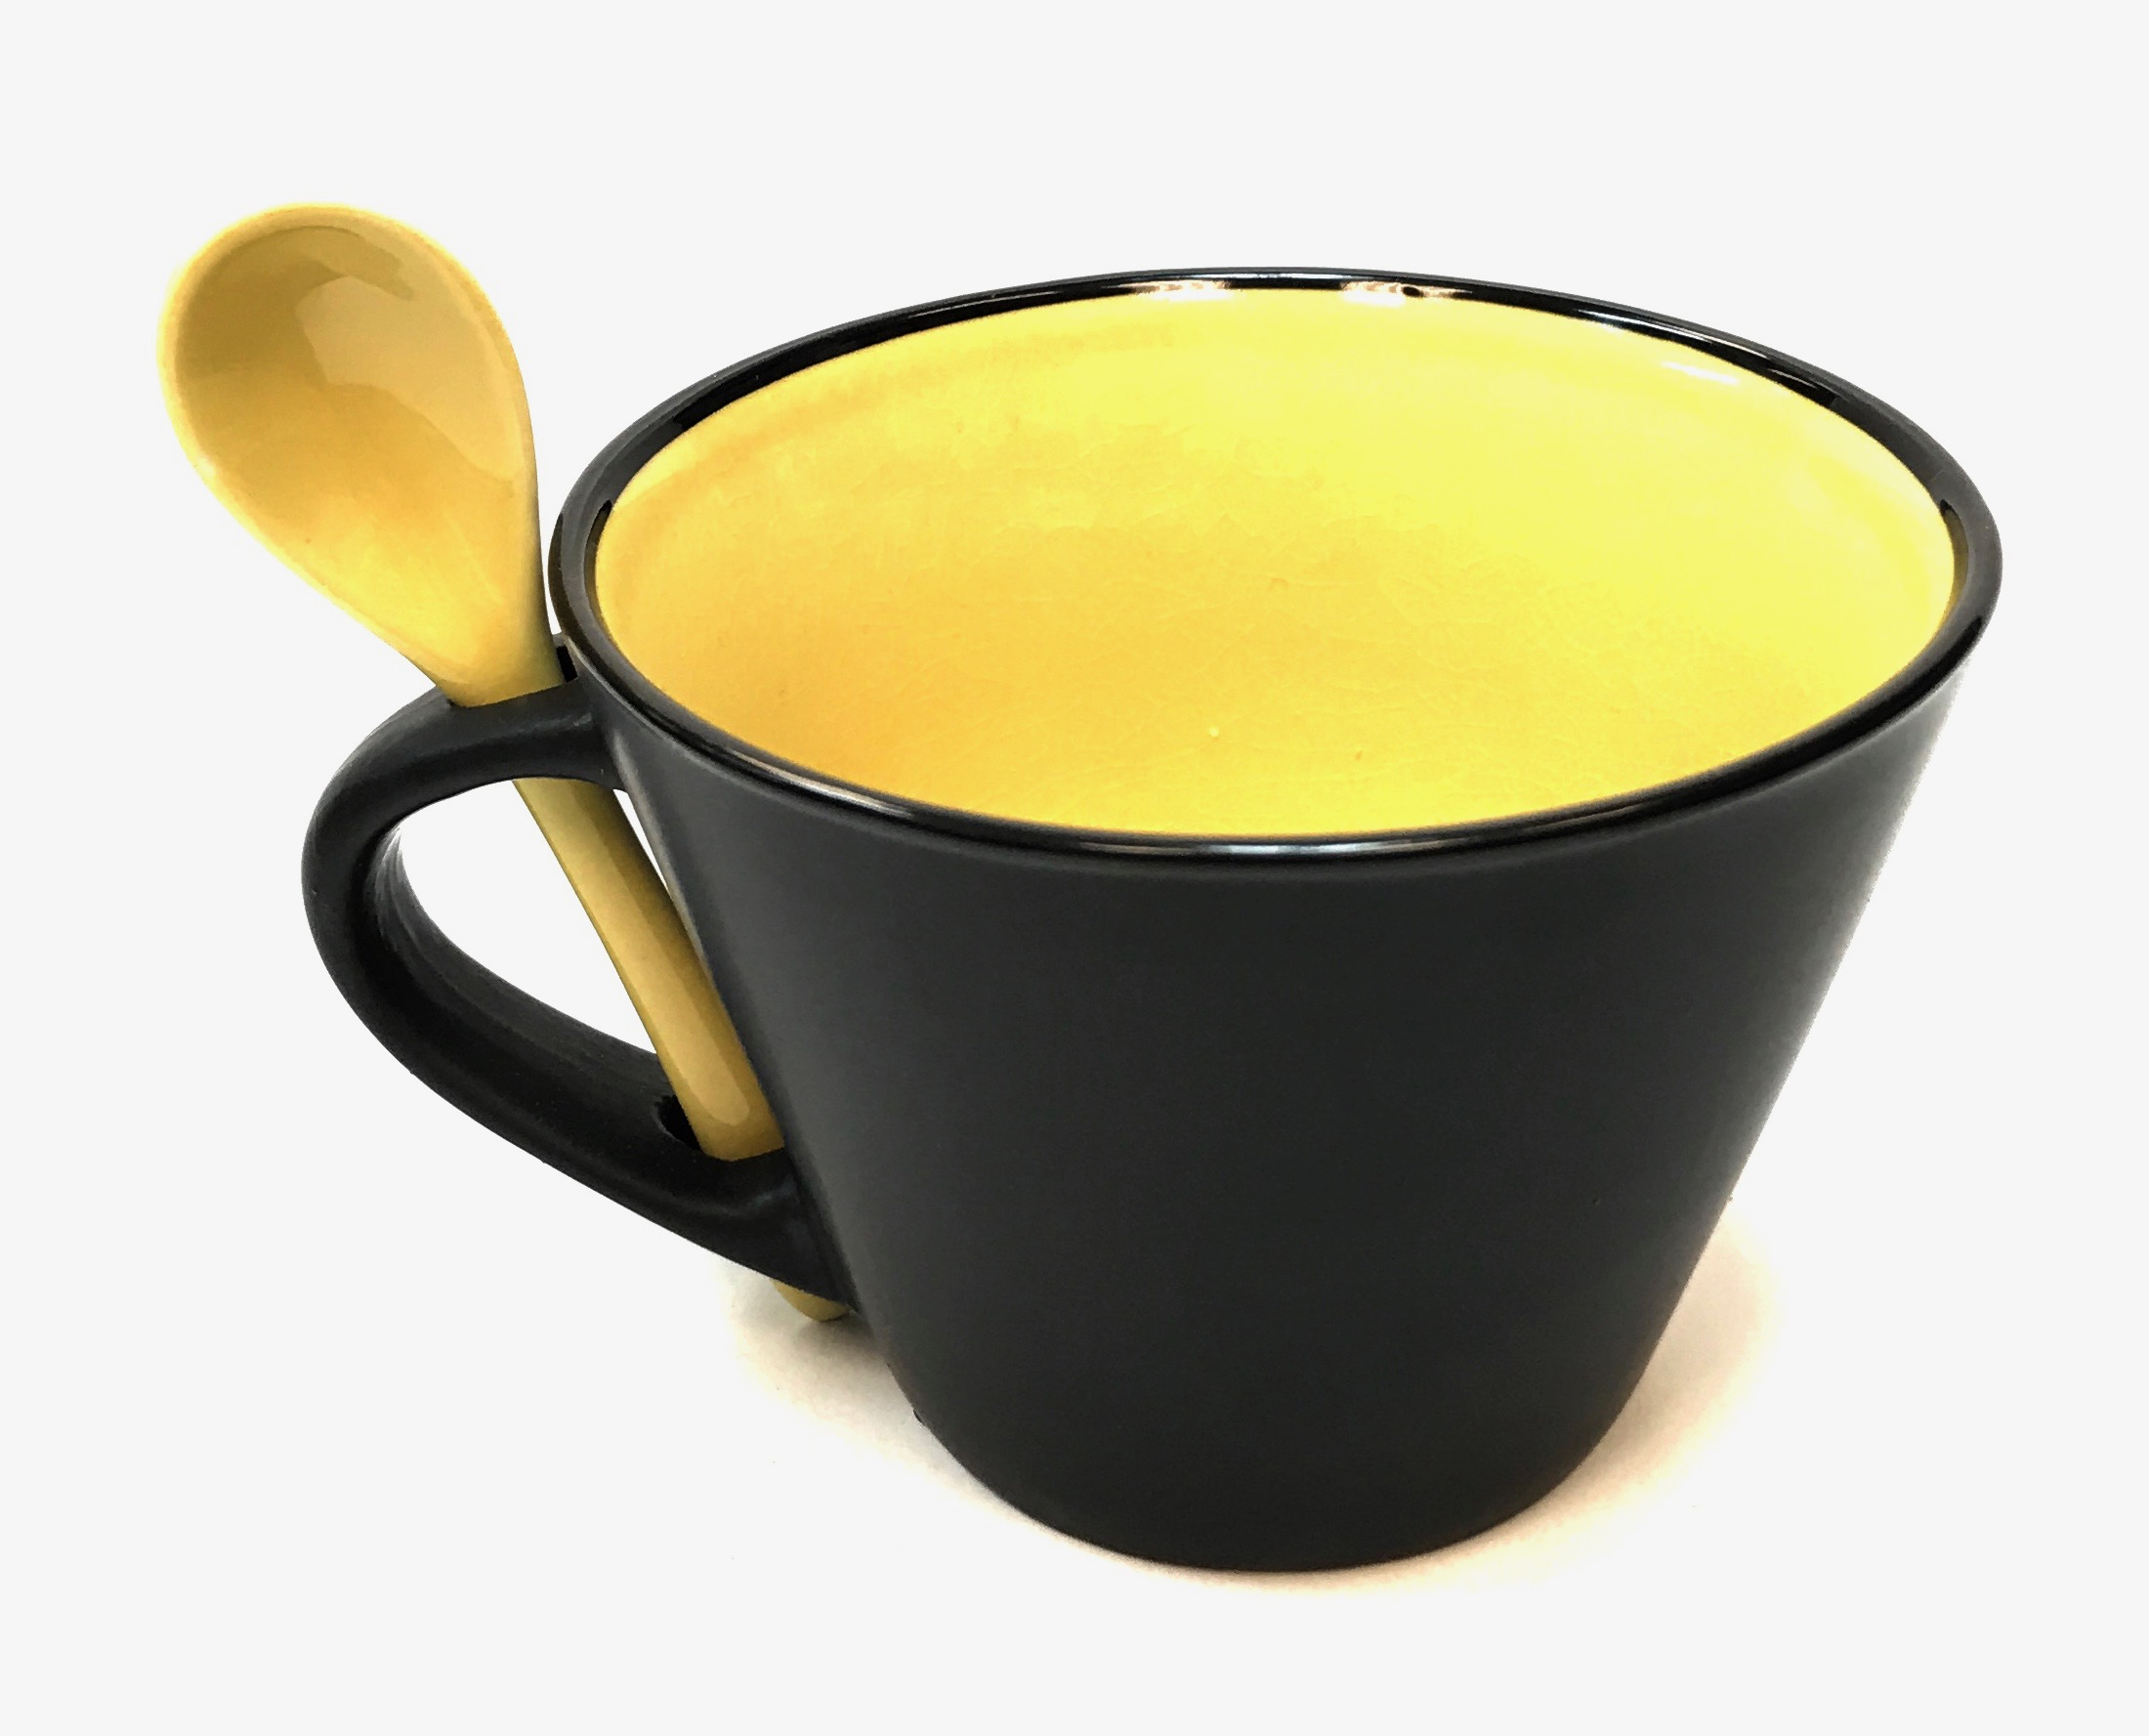 16 Oz Matte Mug W/Spoon - Yellow/Black